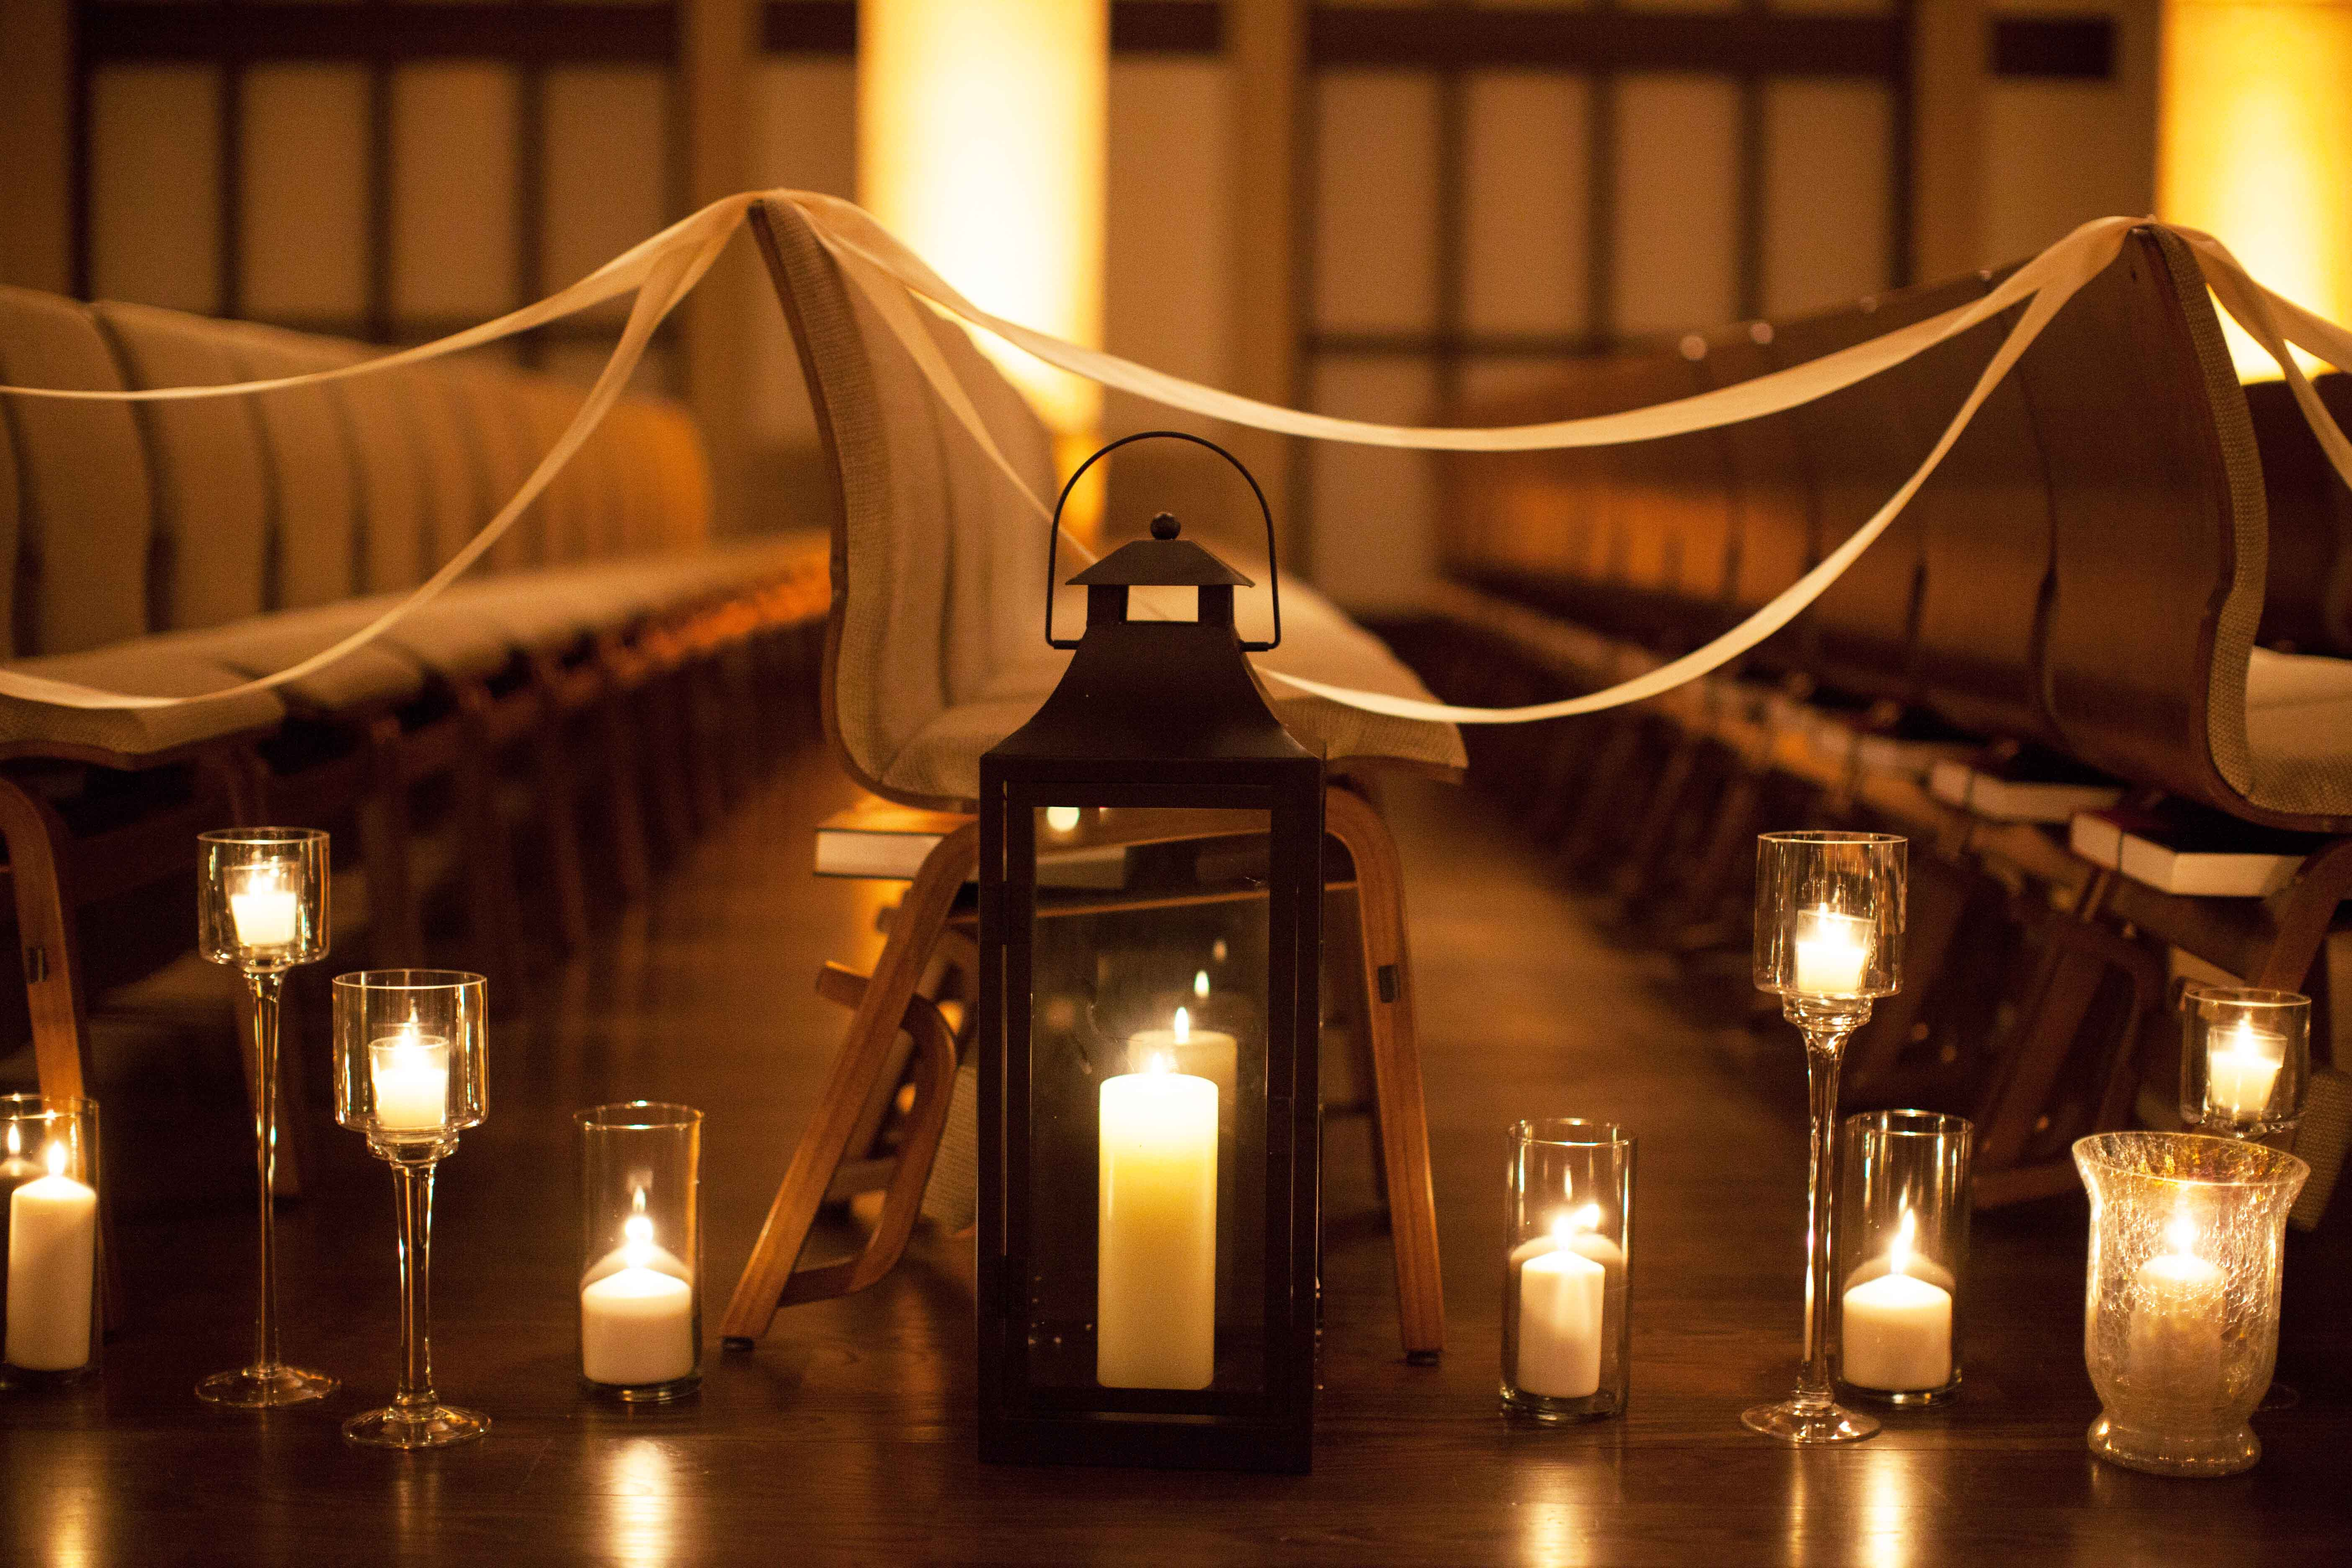 Wedding Holy Wish Lanterns For Weddings For Church Wedding Ceremony Inspiring Wedding Lanterns Jpg Find Your Dream Dress